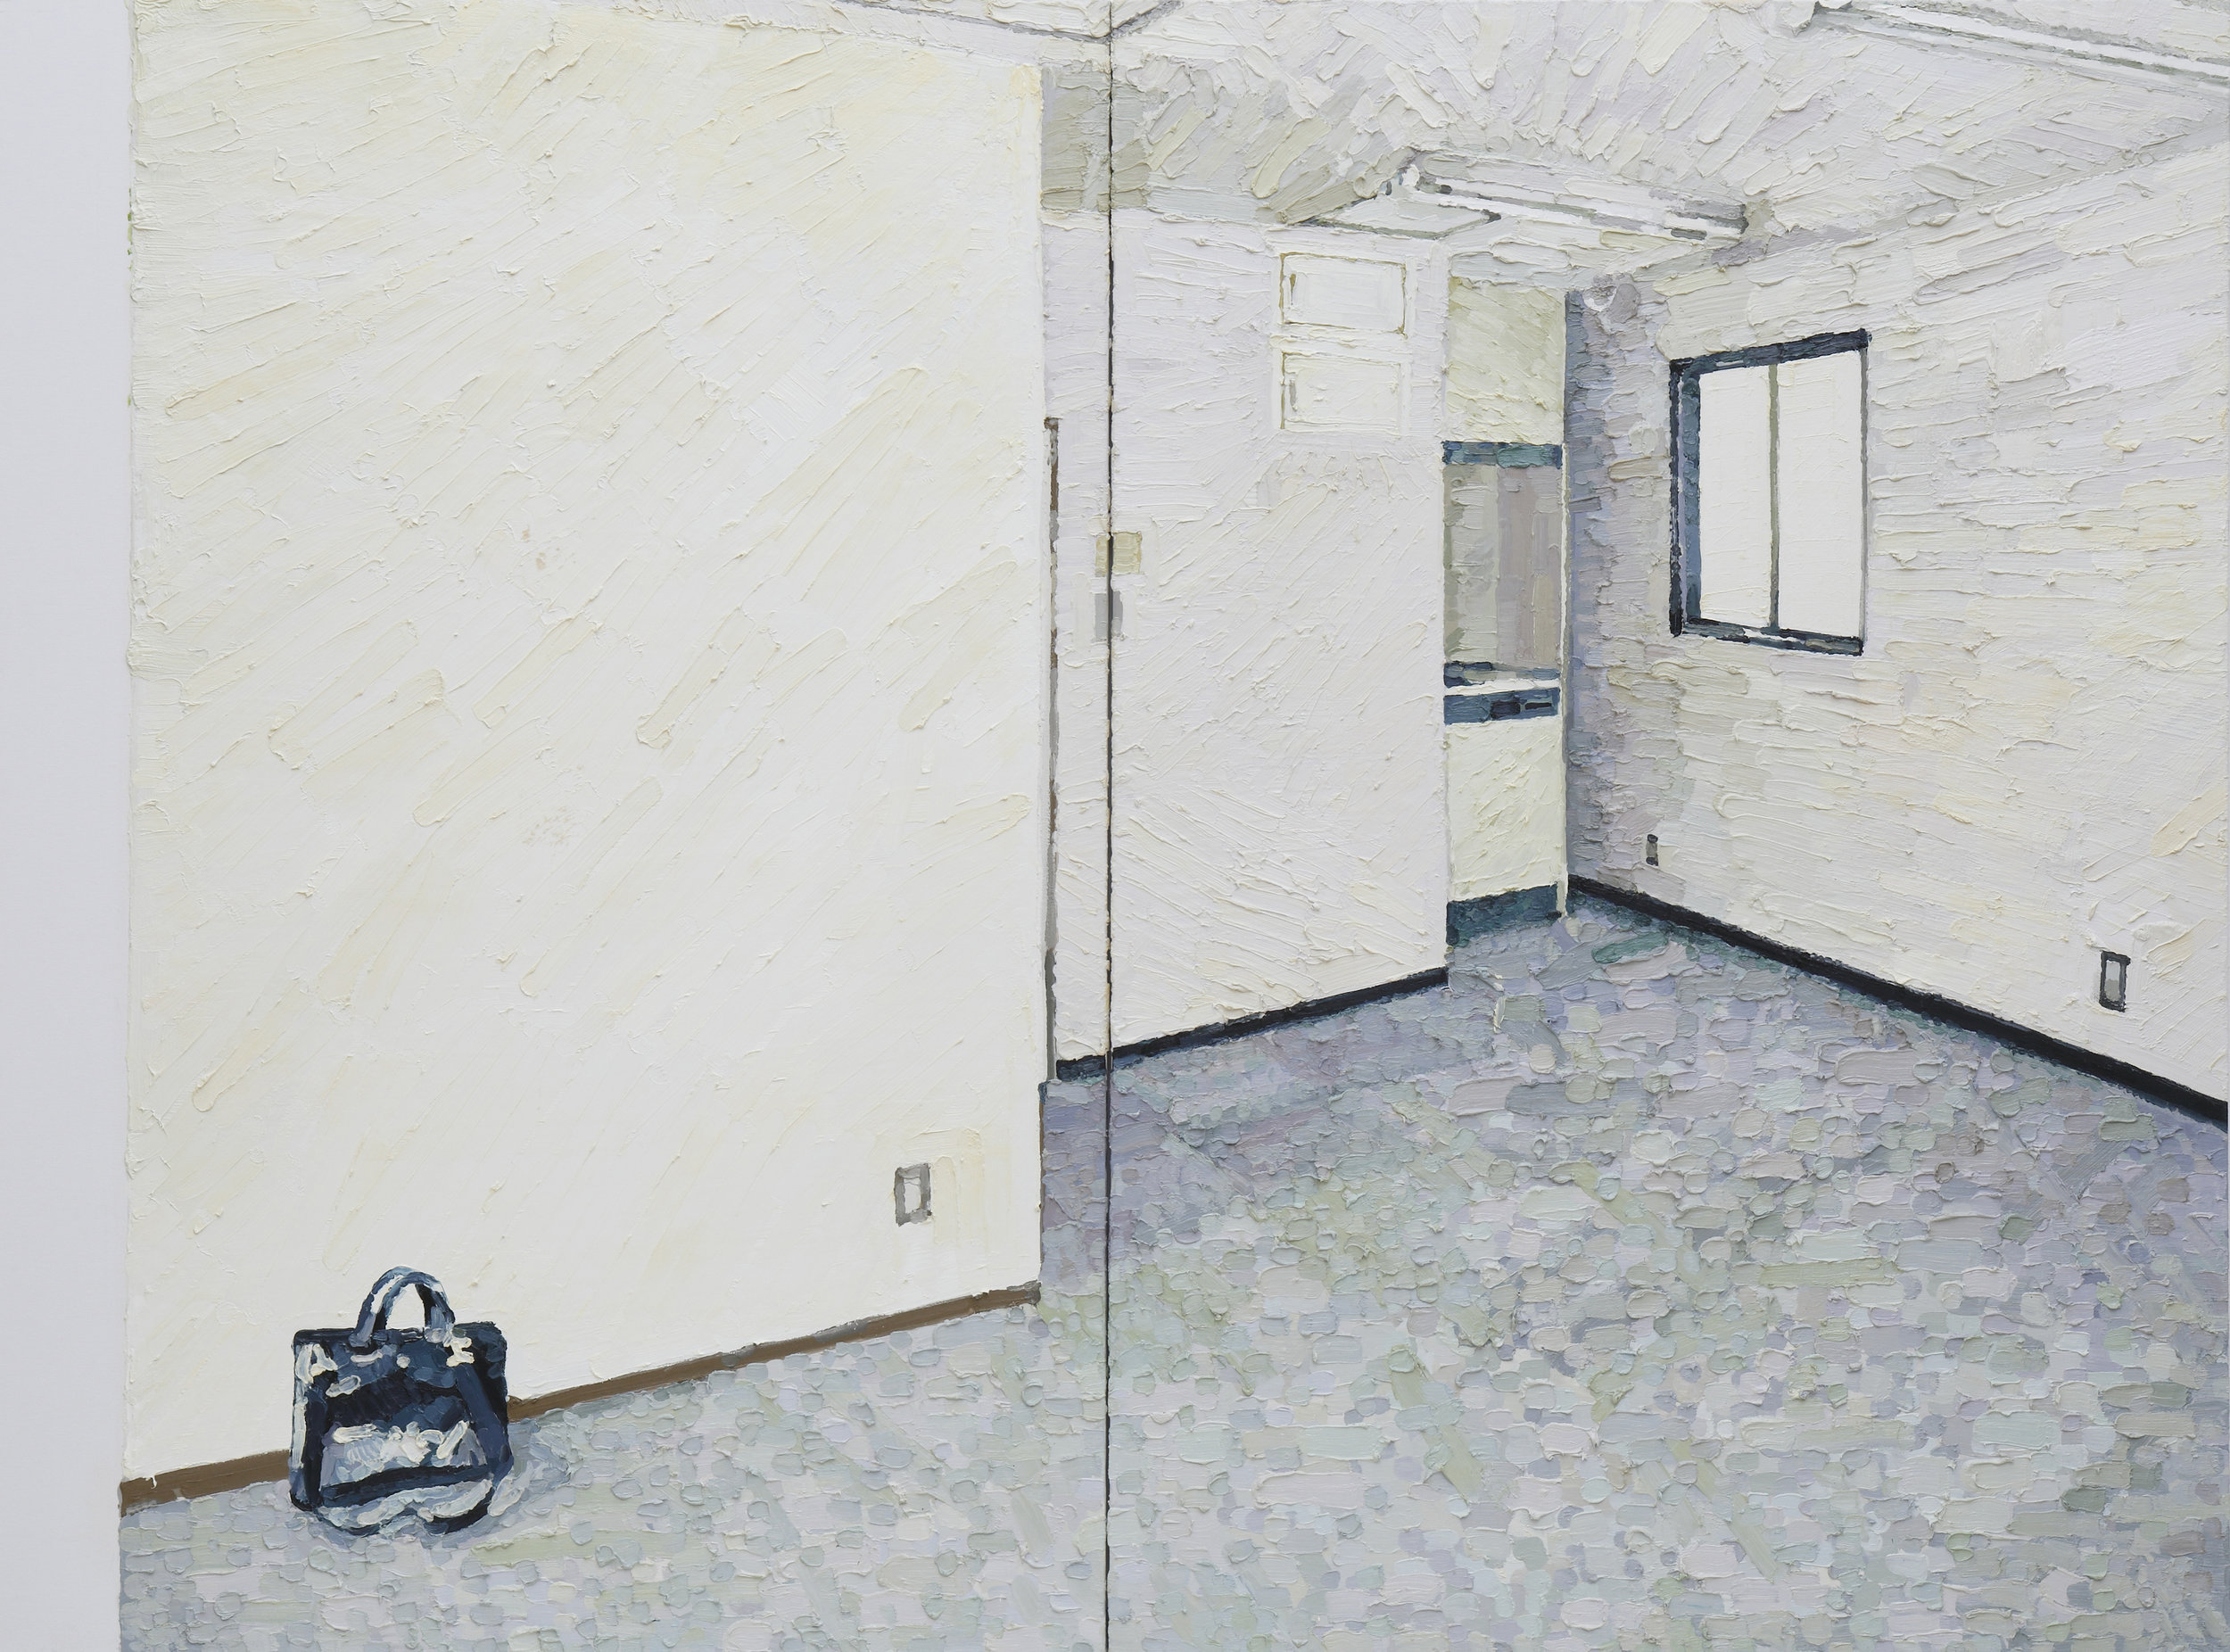 Corner # 02 oil on cotton 194 x 260.6 cm 2012 photo by Keizo Kioku